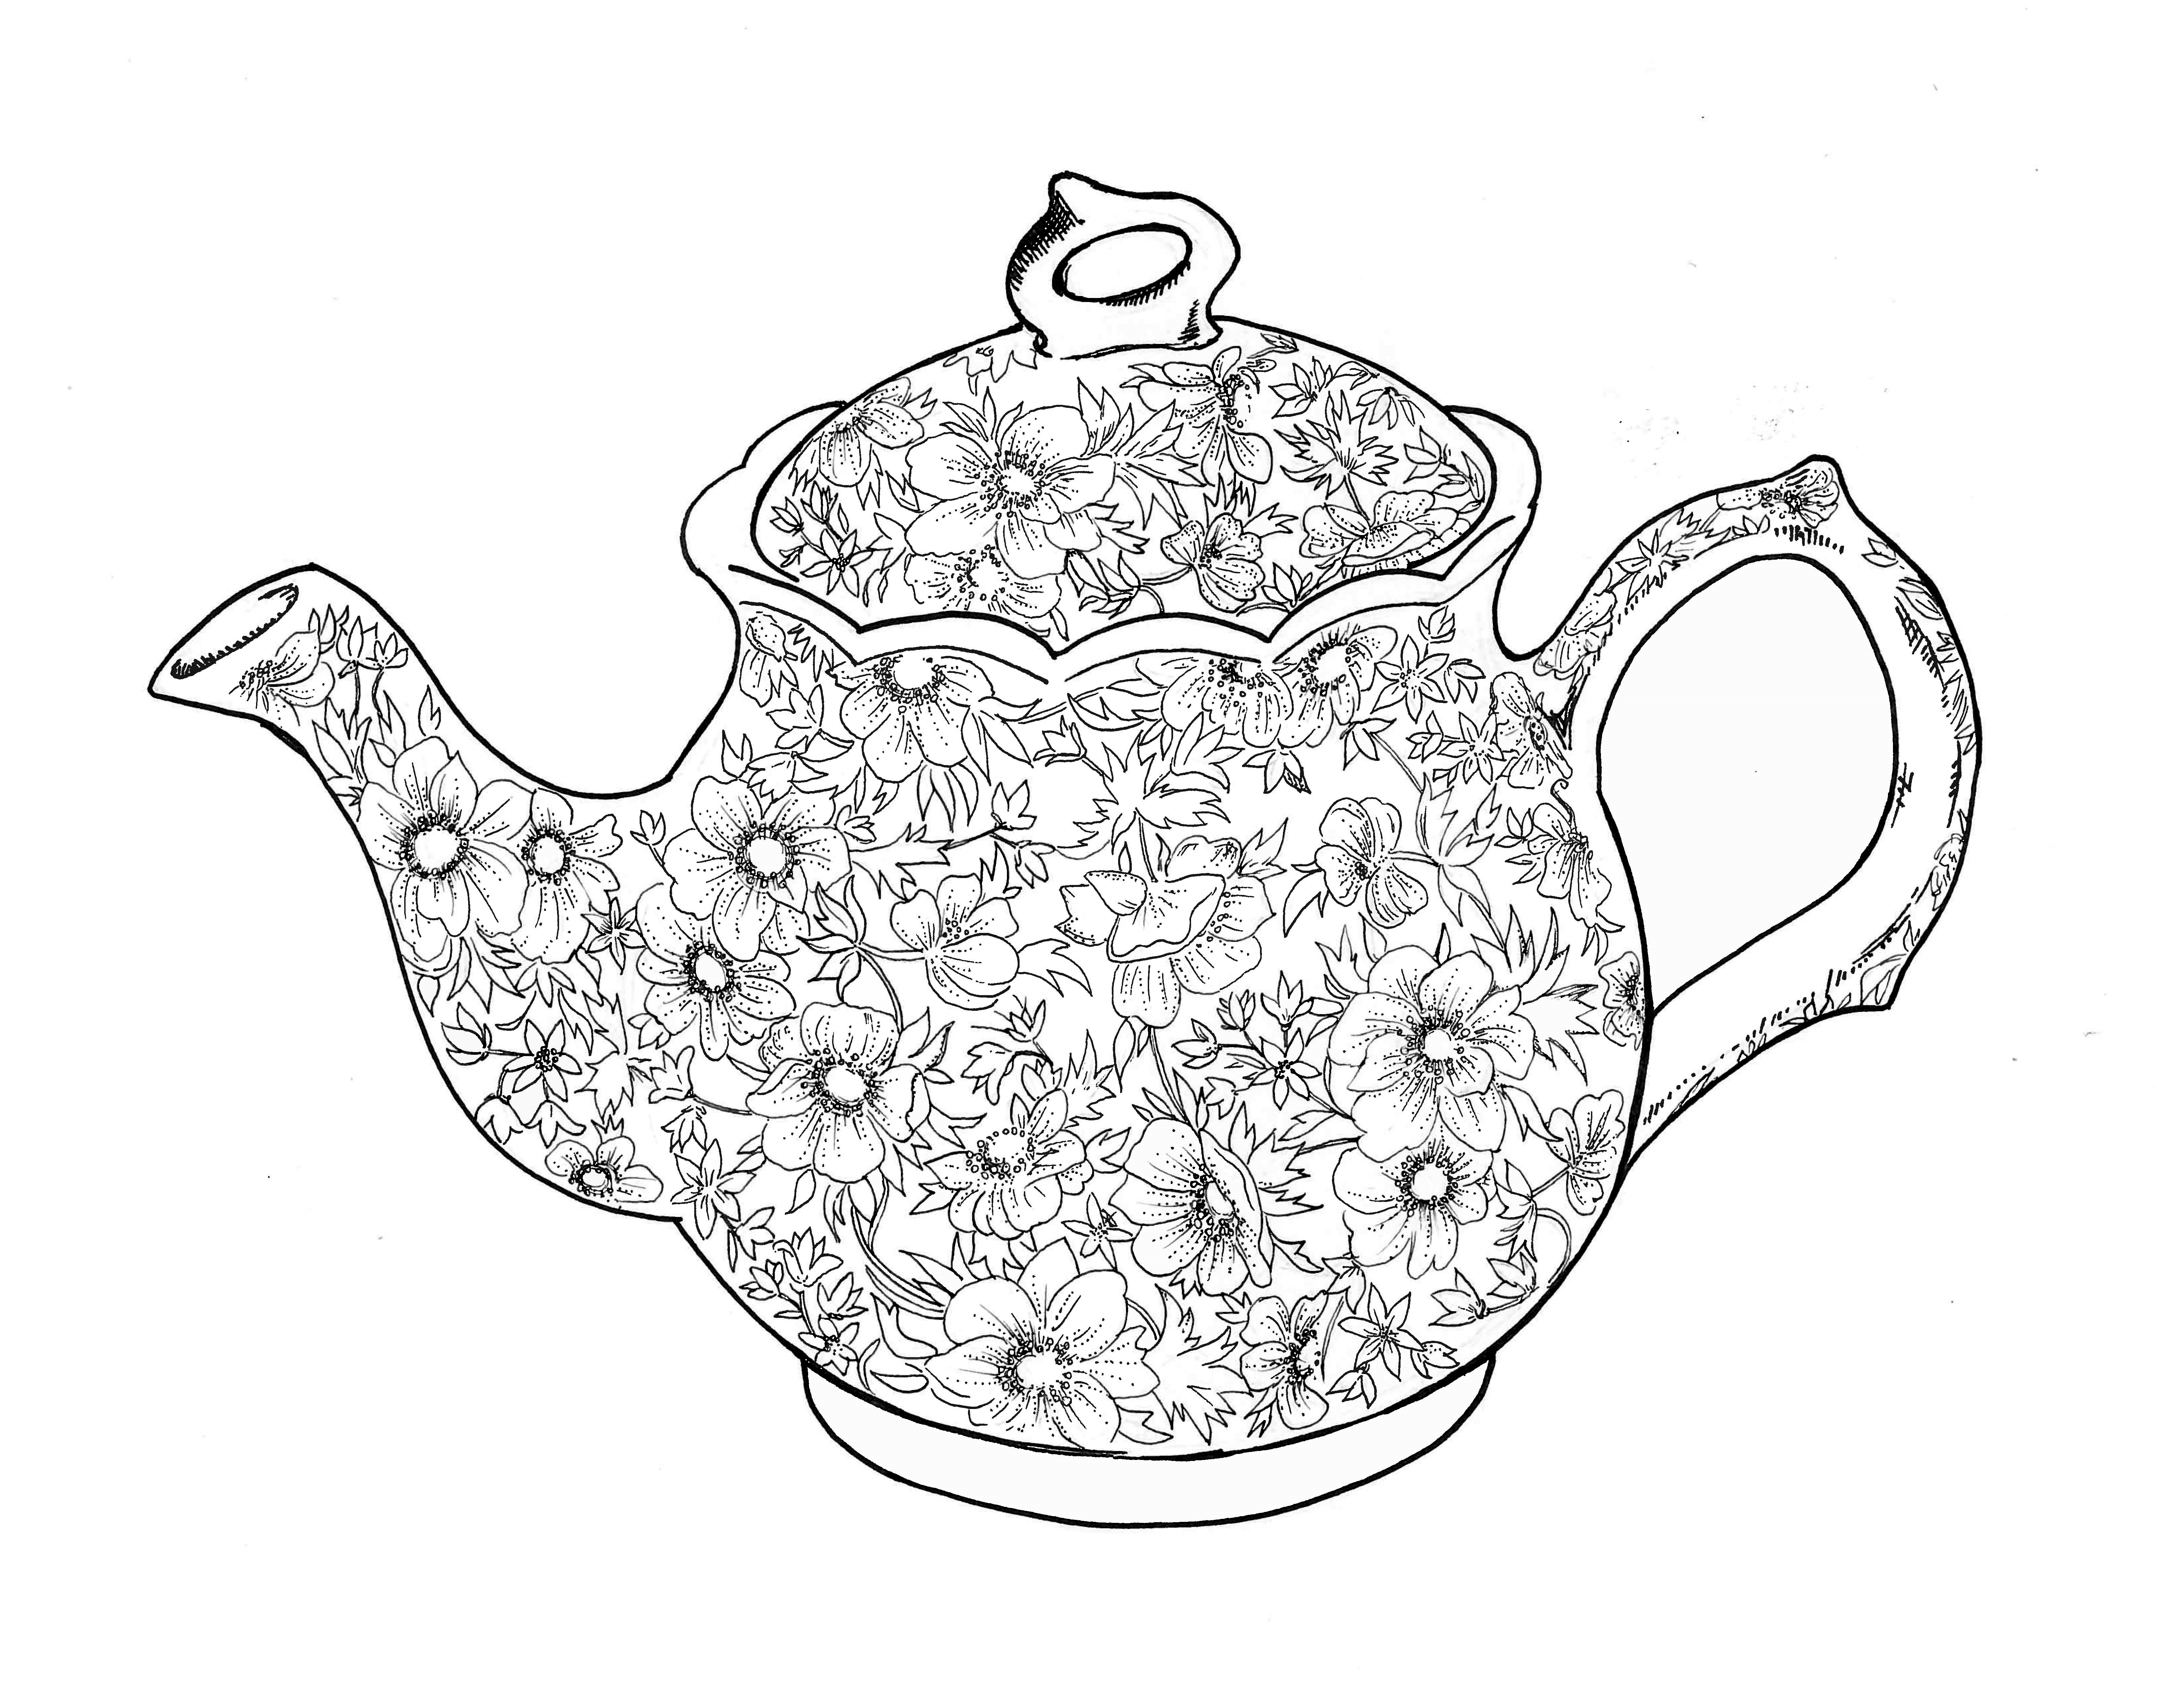 teapot colouring teapot coloring page printable teapot coloring page color teapot colouring